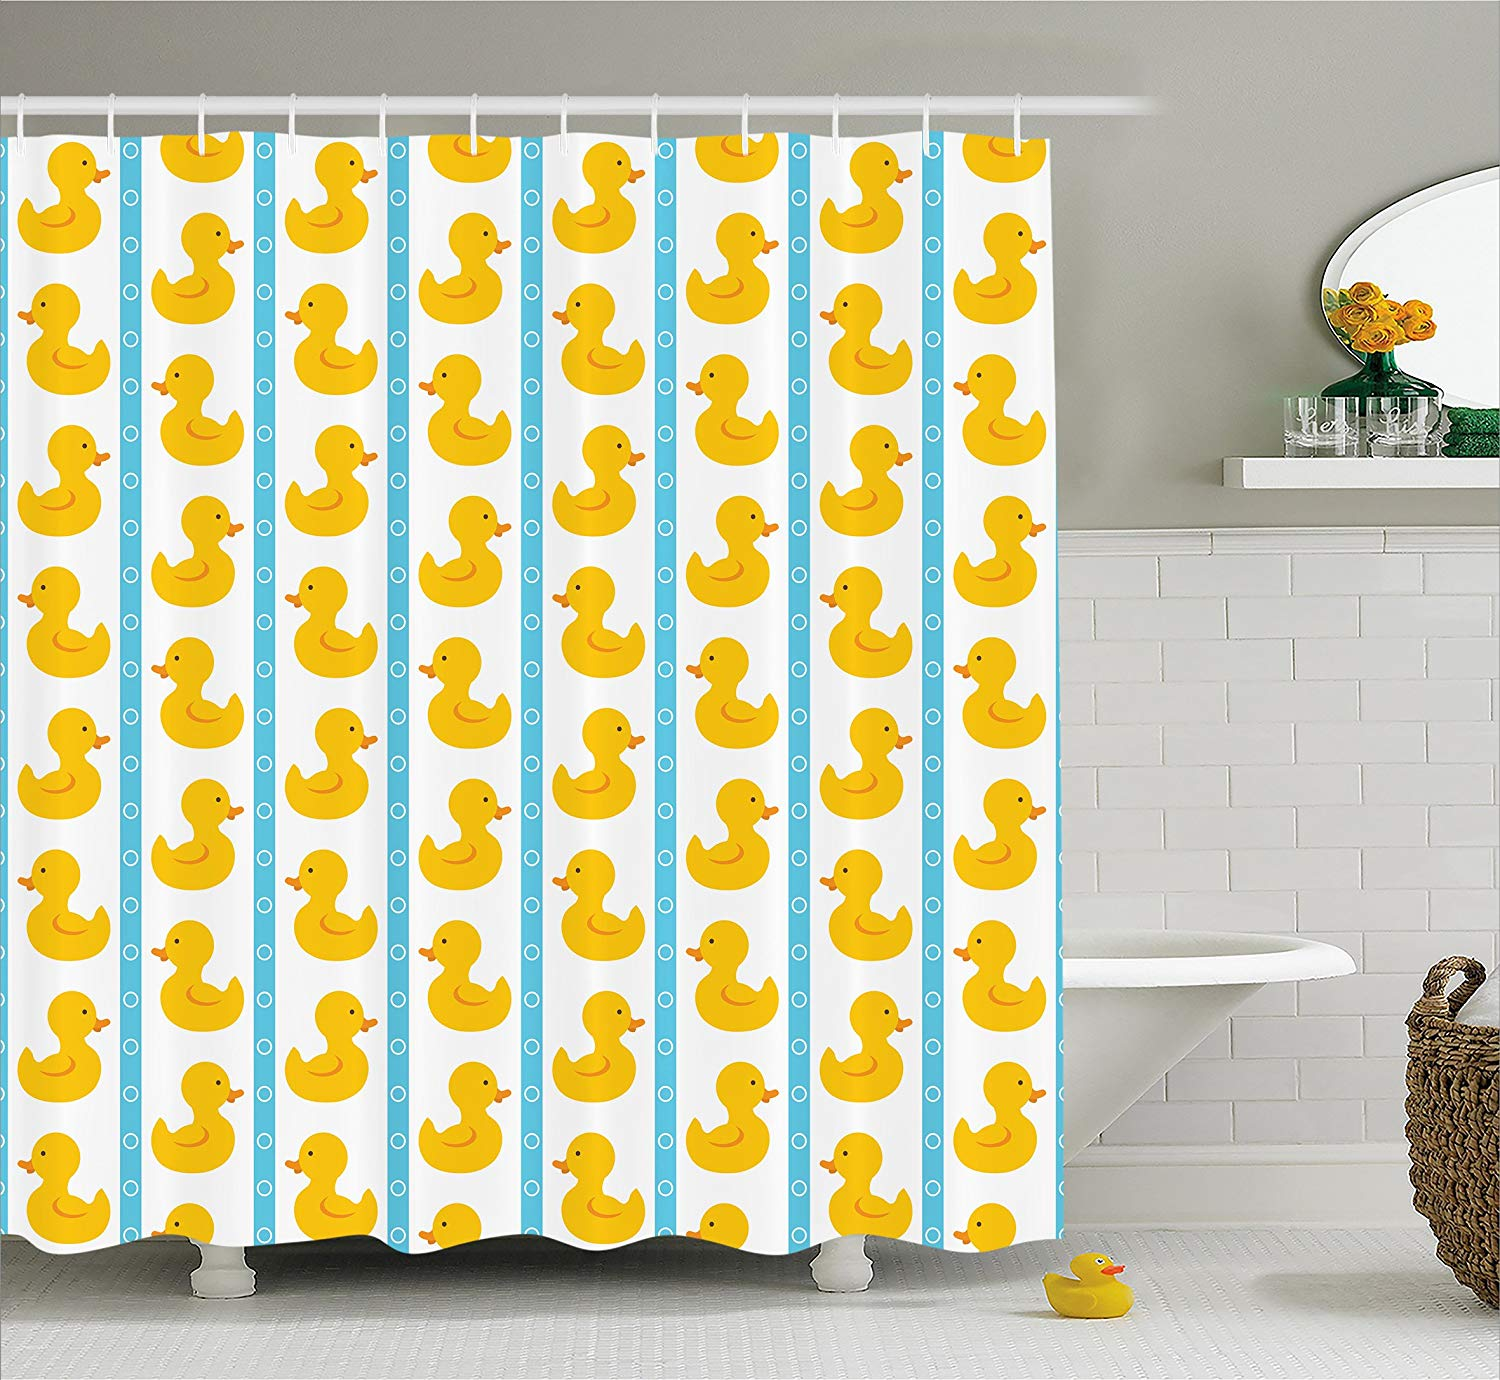 Us 12 61 31 Off Rubber Duck Shower Curtain Yellow Duckies With Blue Stripes Baby Nursery Play Toys Pattern Fabric Bathroom Set Hooks In